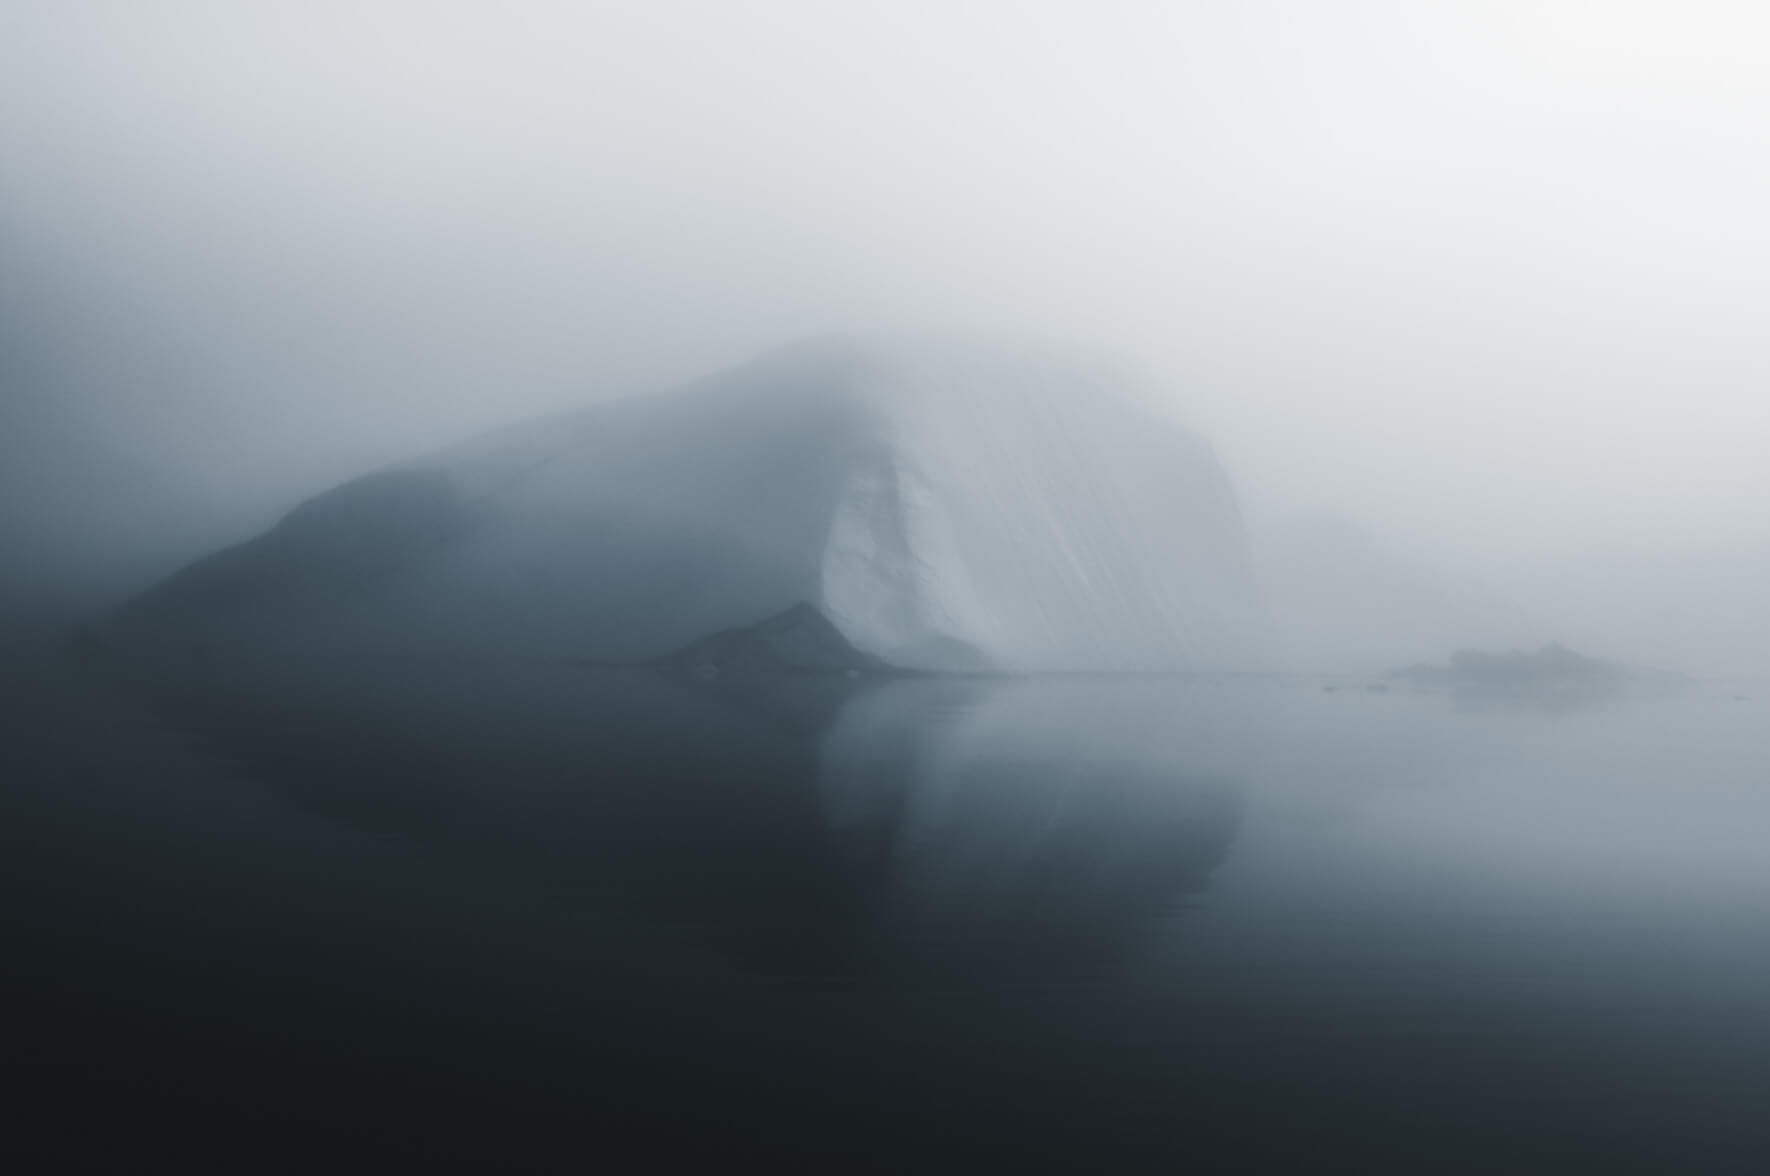 Dramatic landscape photography by Northlandscapes – Jan Erik Waider